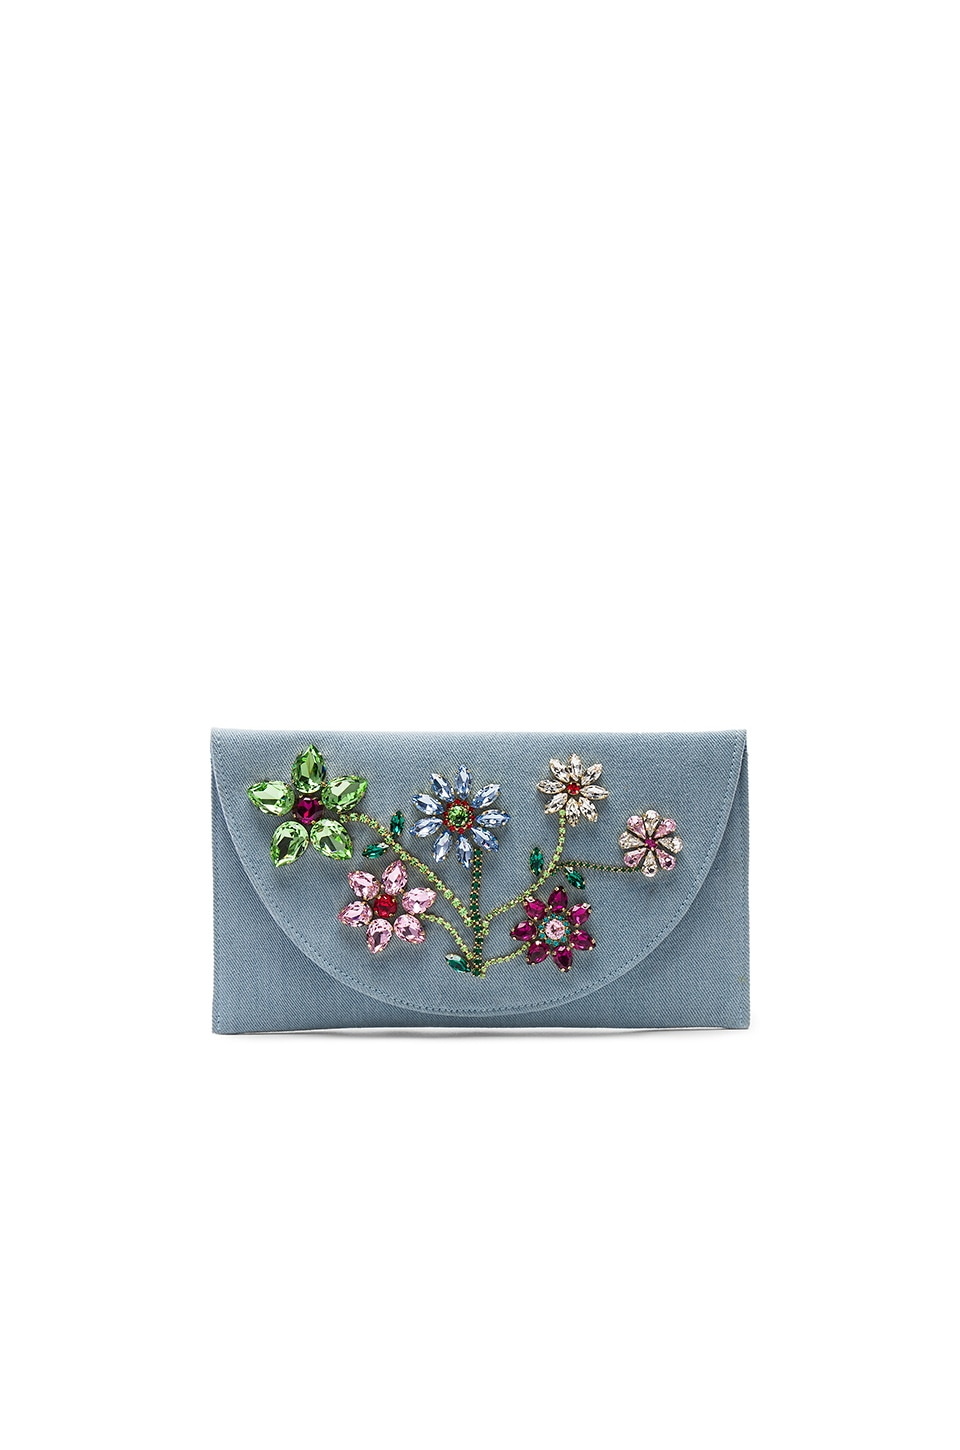 Flower Clutch by Mystique